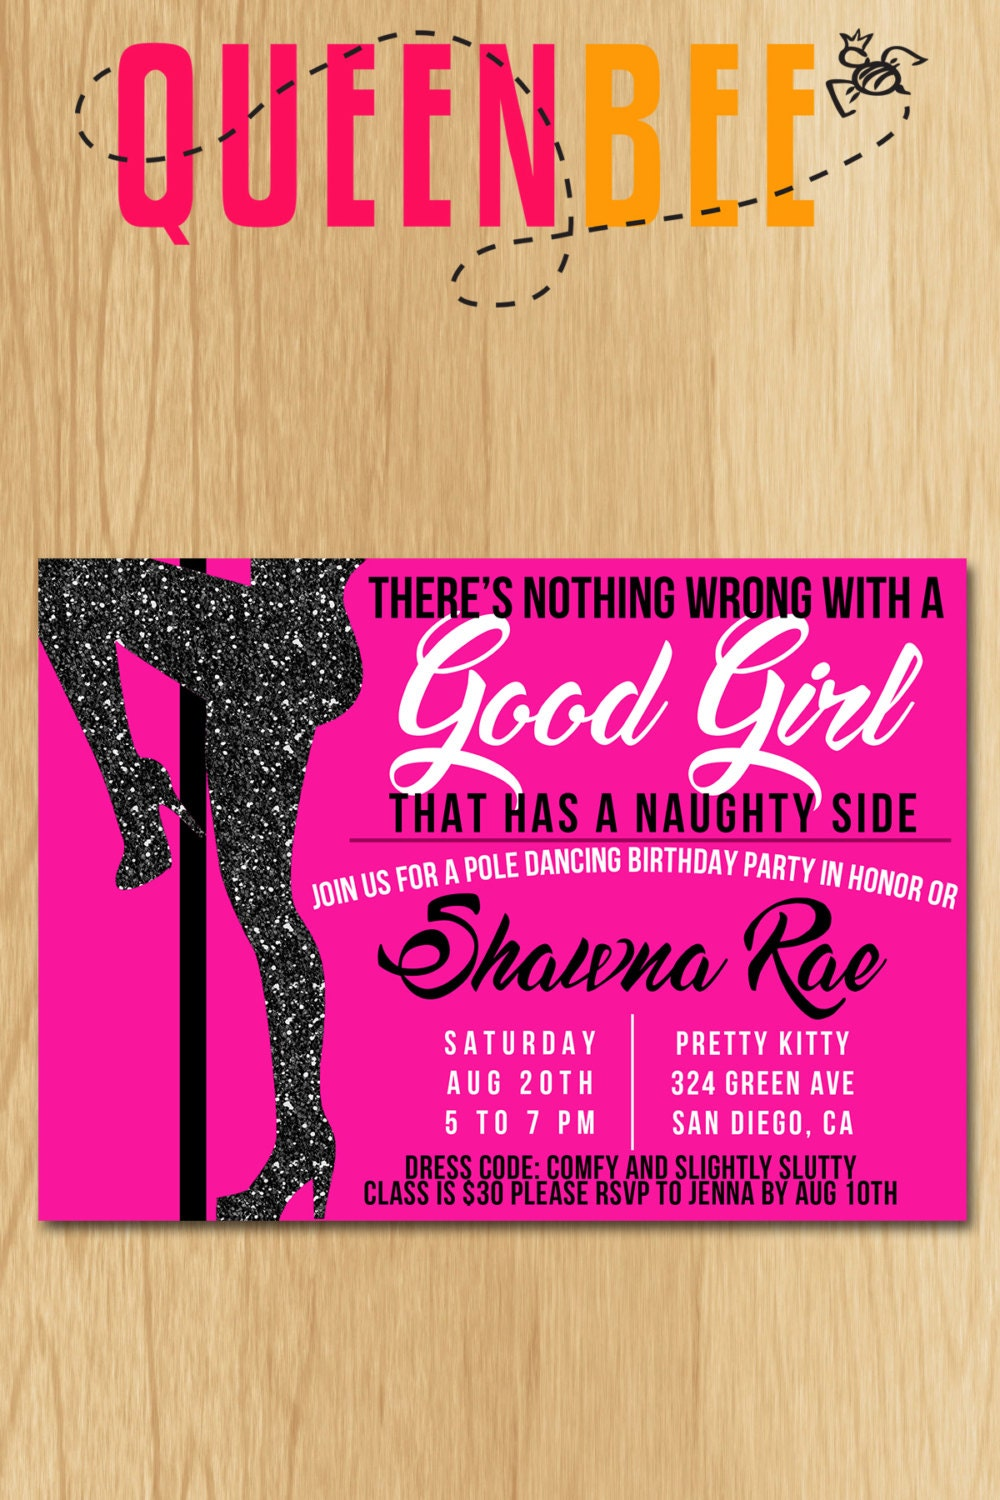 Pole dancing birthday party invite with free game card zoom monicamarmolfo Image collections